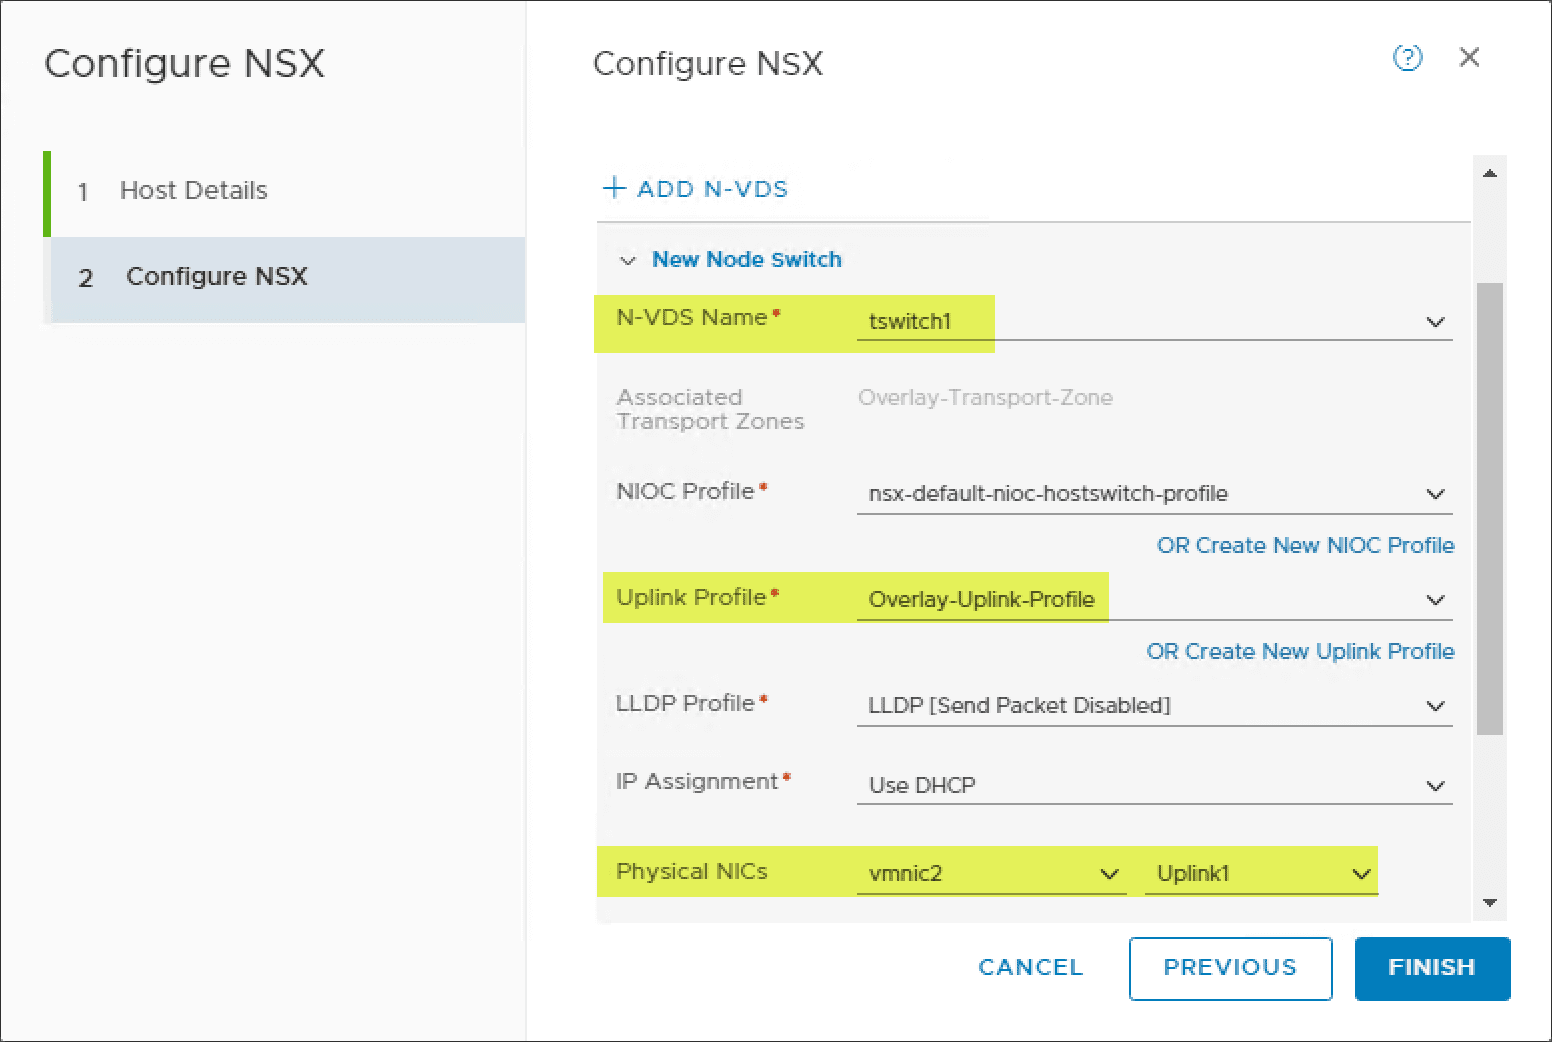 Configure-NSX-screen-to-create-transport-zone-N-VDS-uplink-profile-for-NSX-T